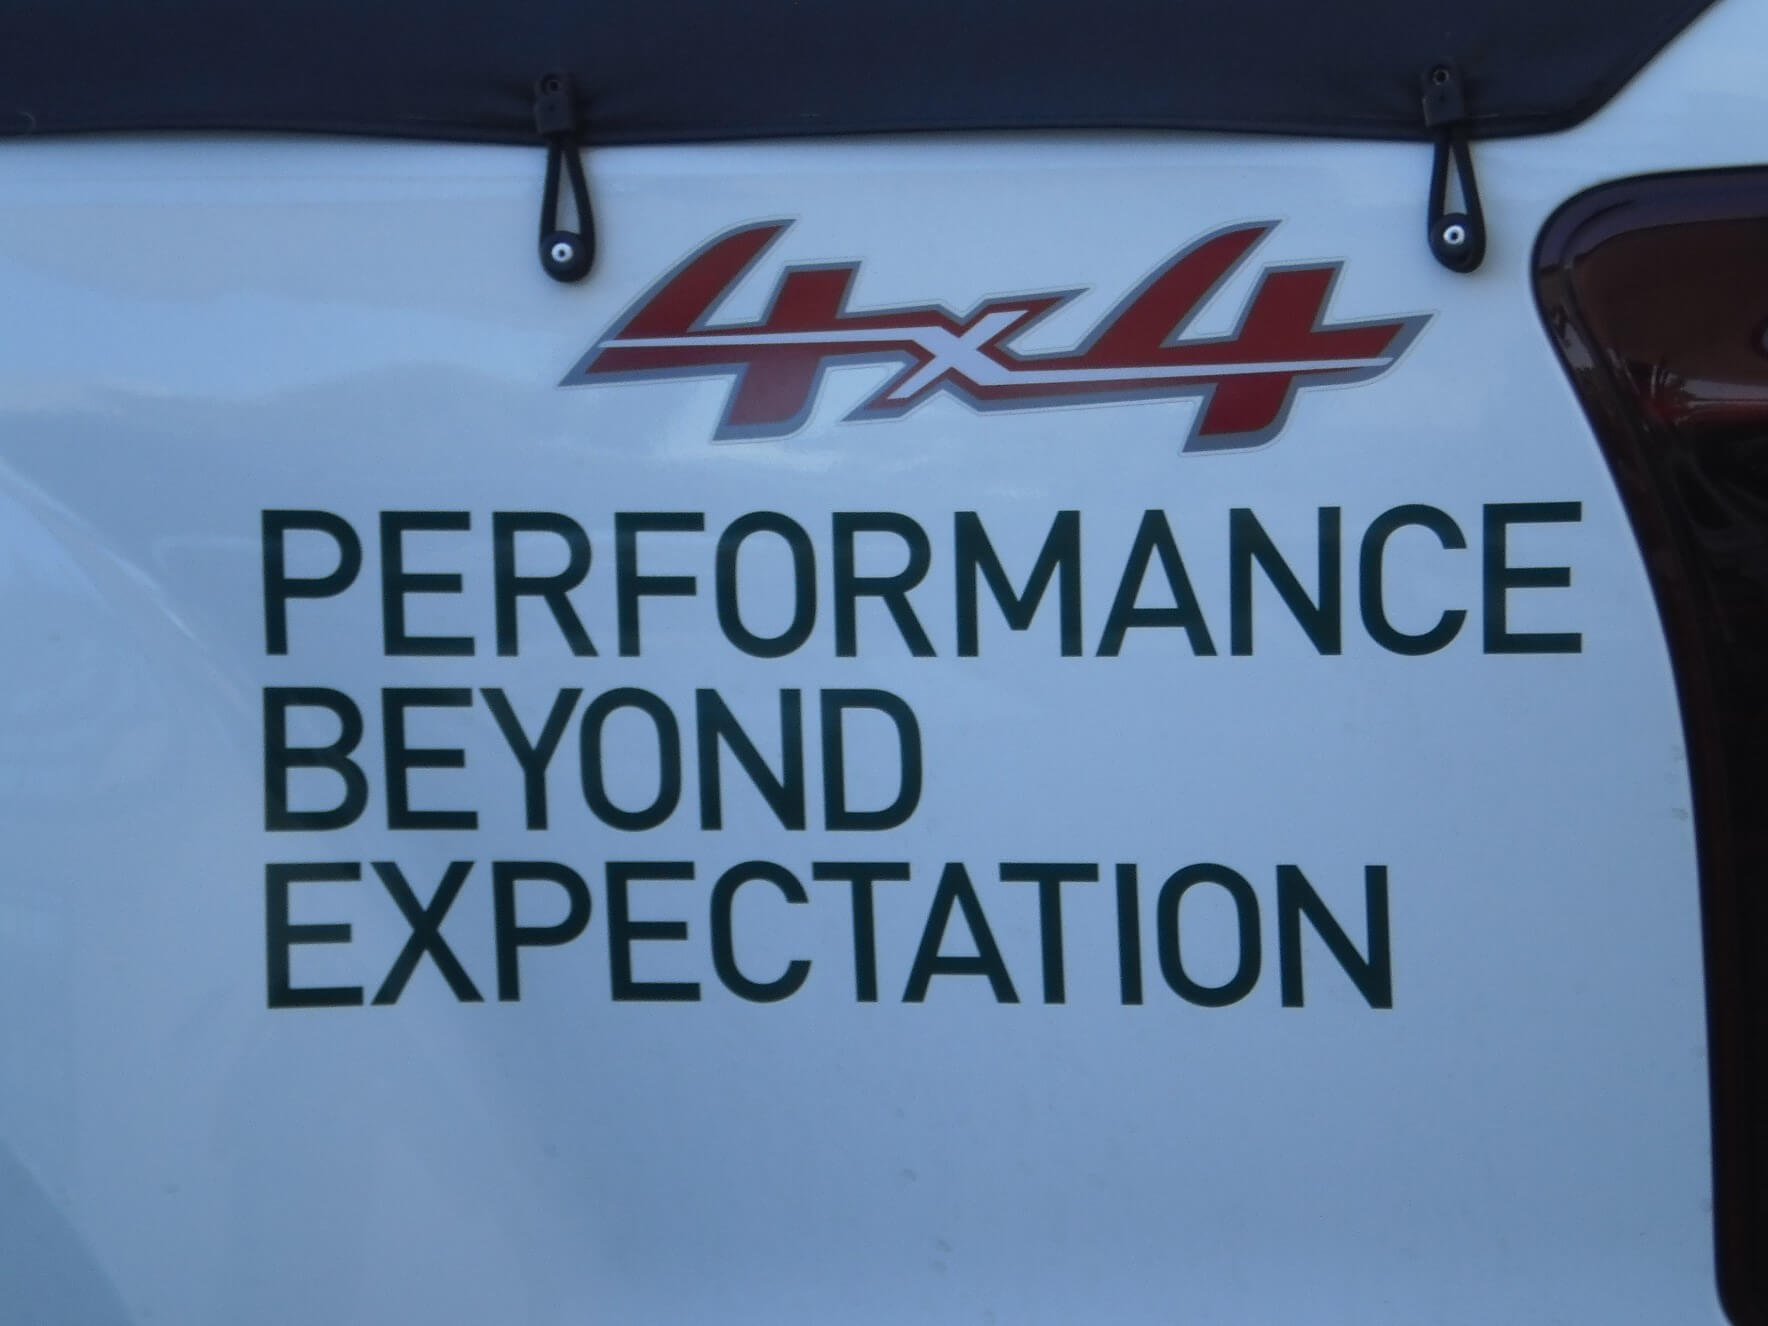 Slogan on 4WD ute - Performance beyond expectation